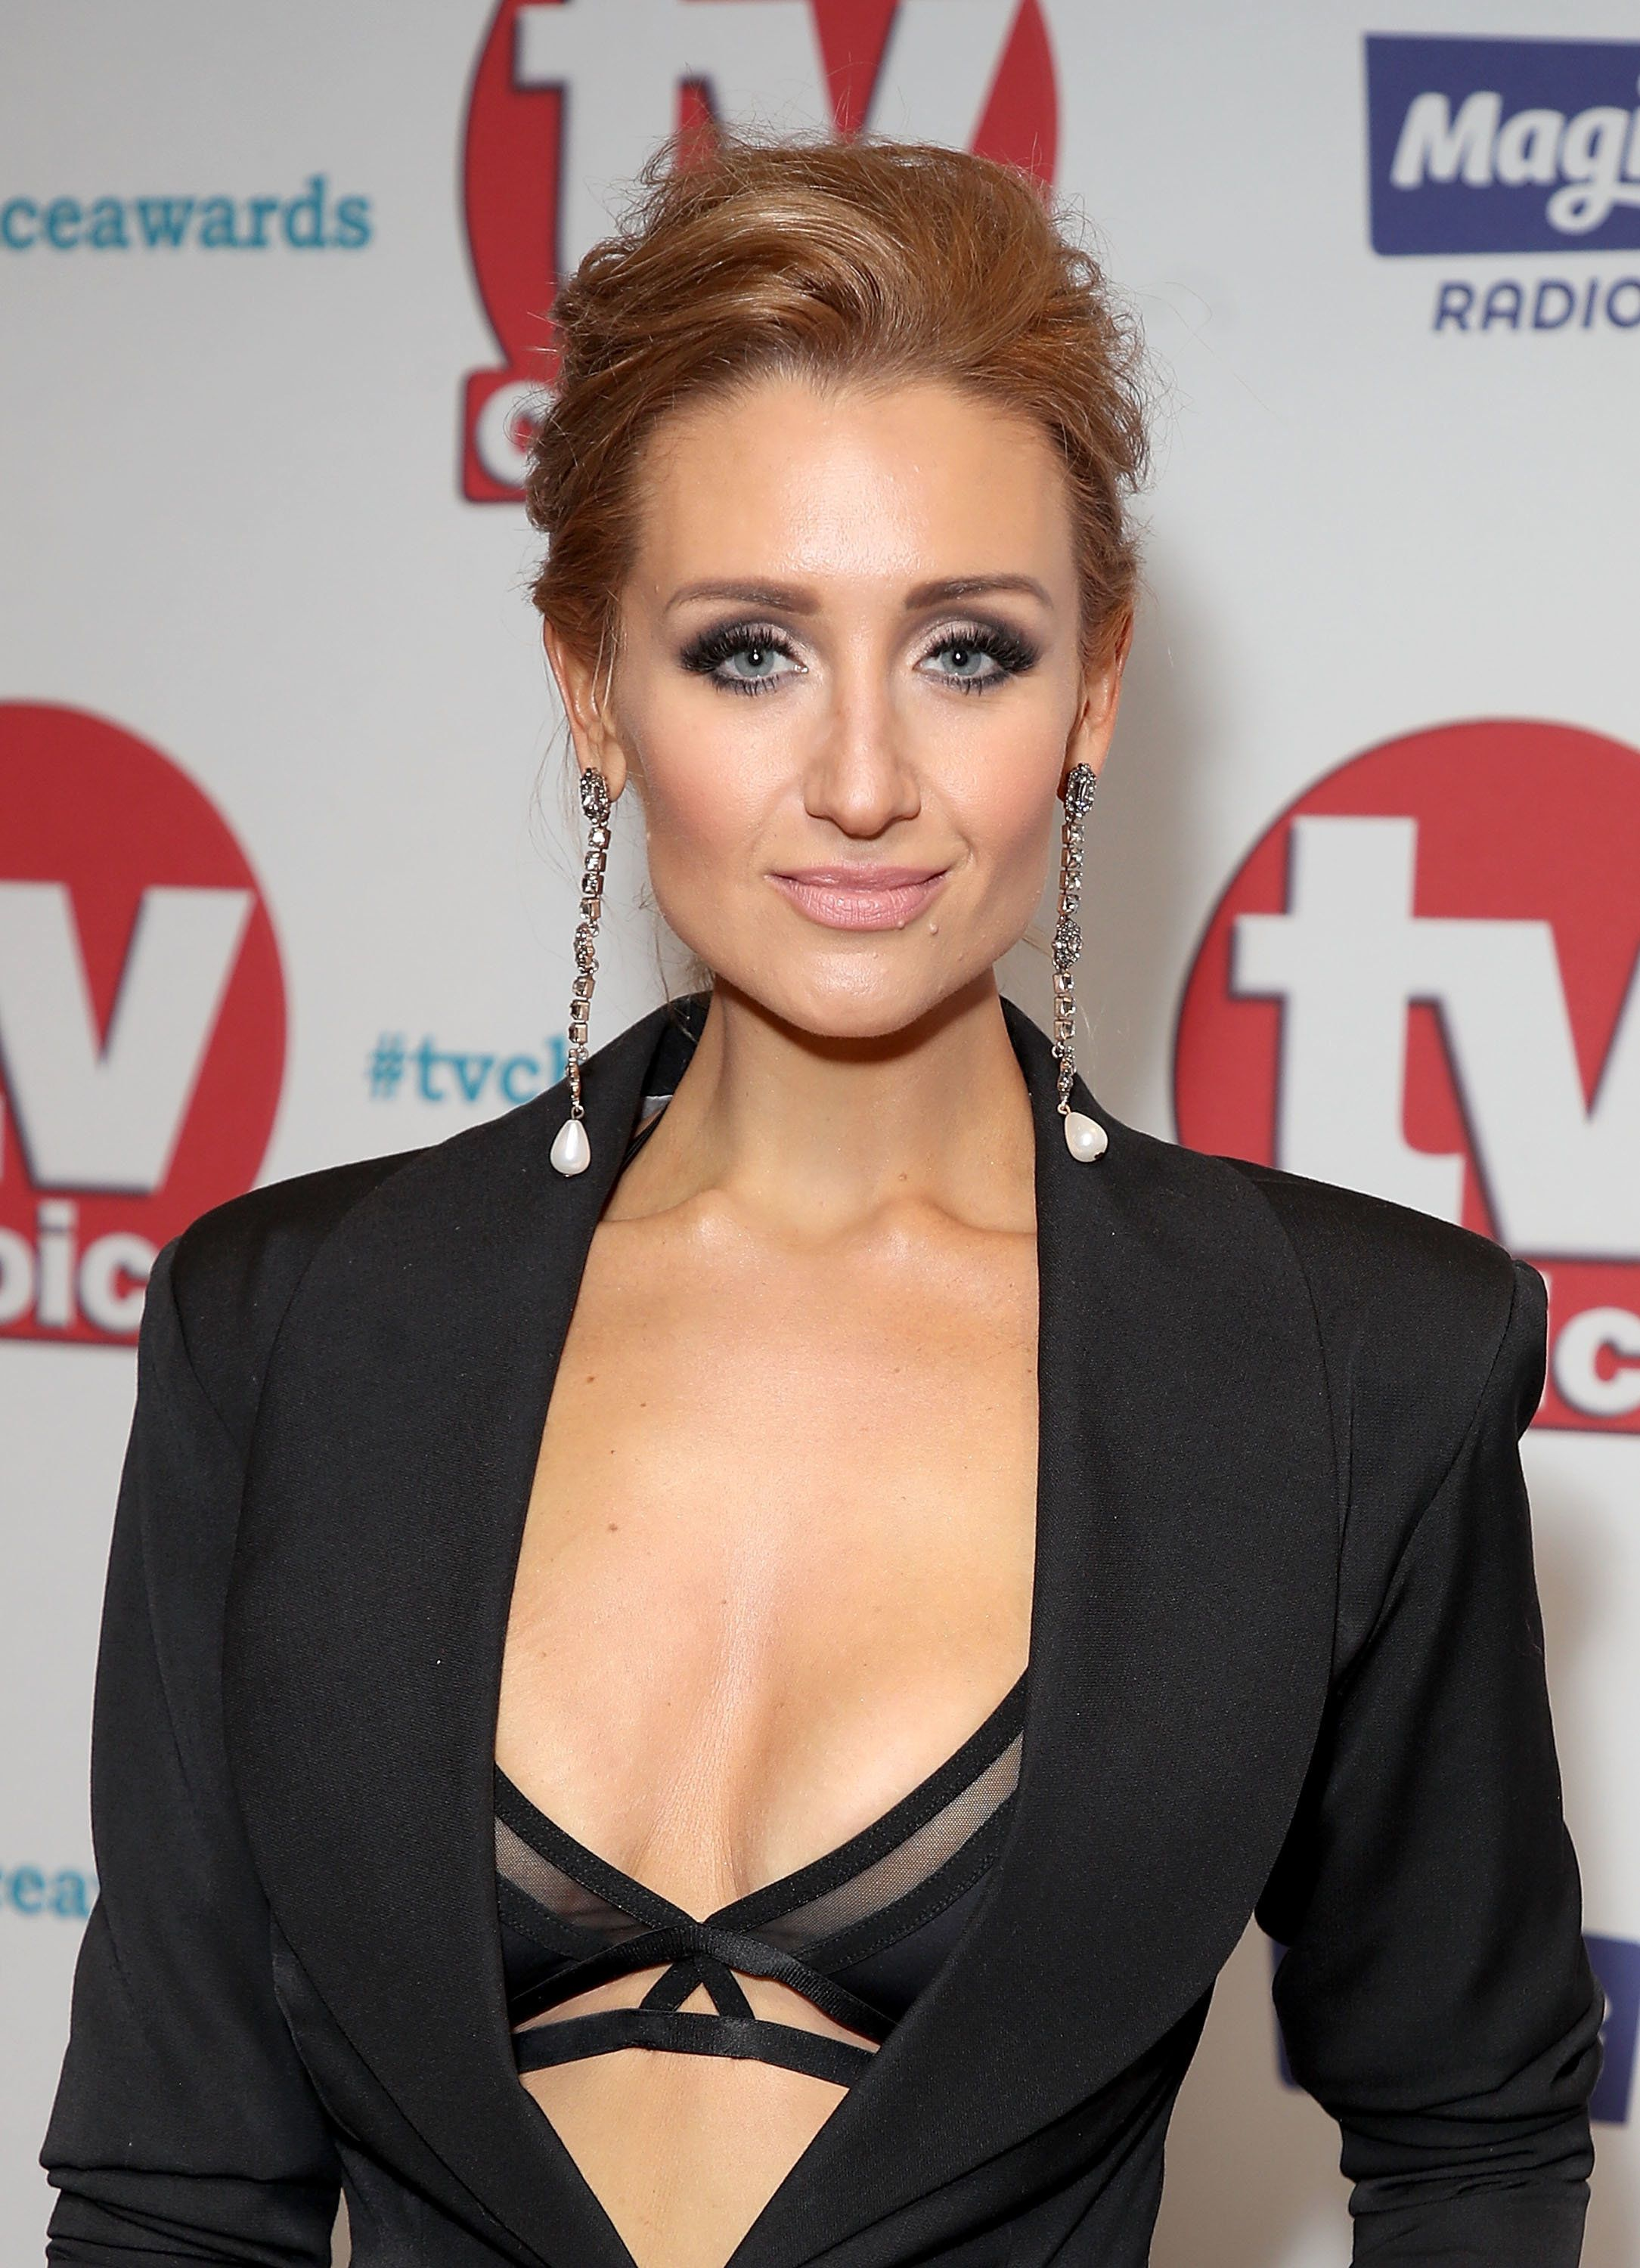 Now You Can Rock Catherine Tyldesley's TV Choice Awards Underwear-As-Outerwear